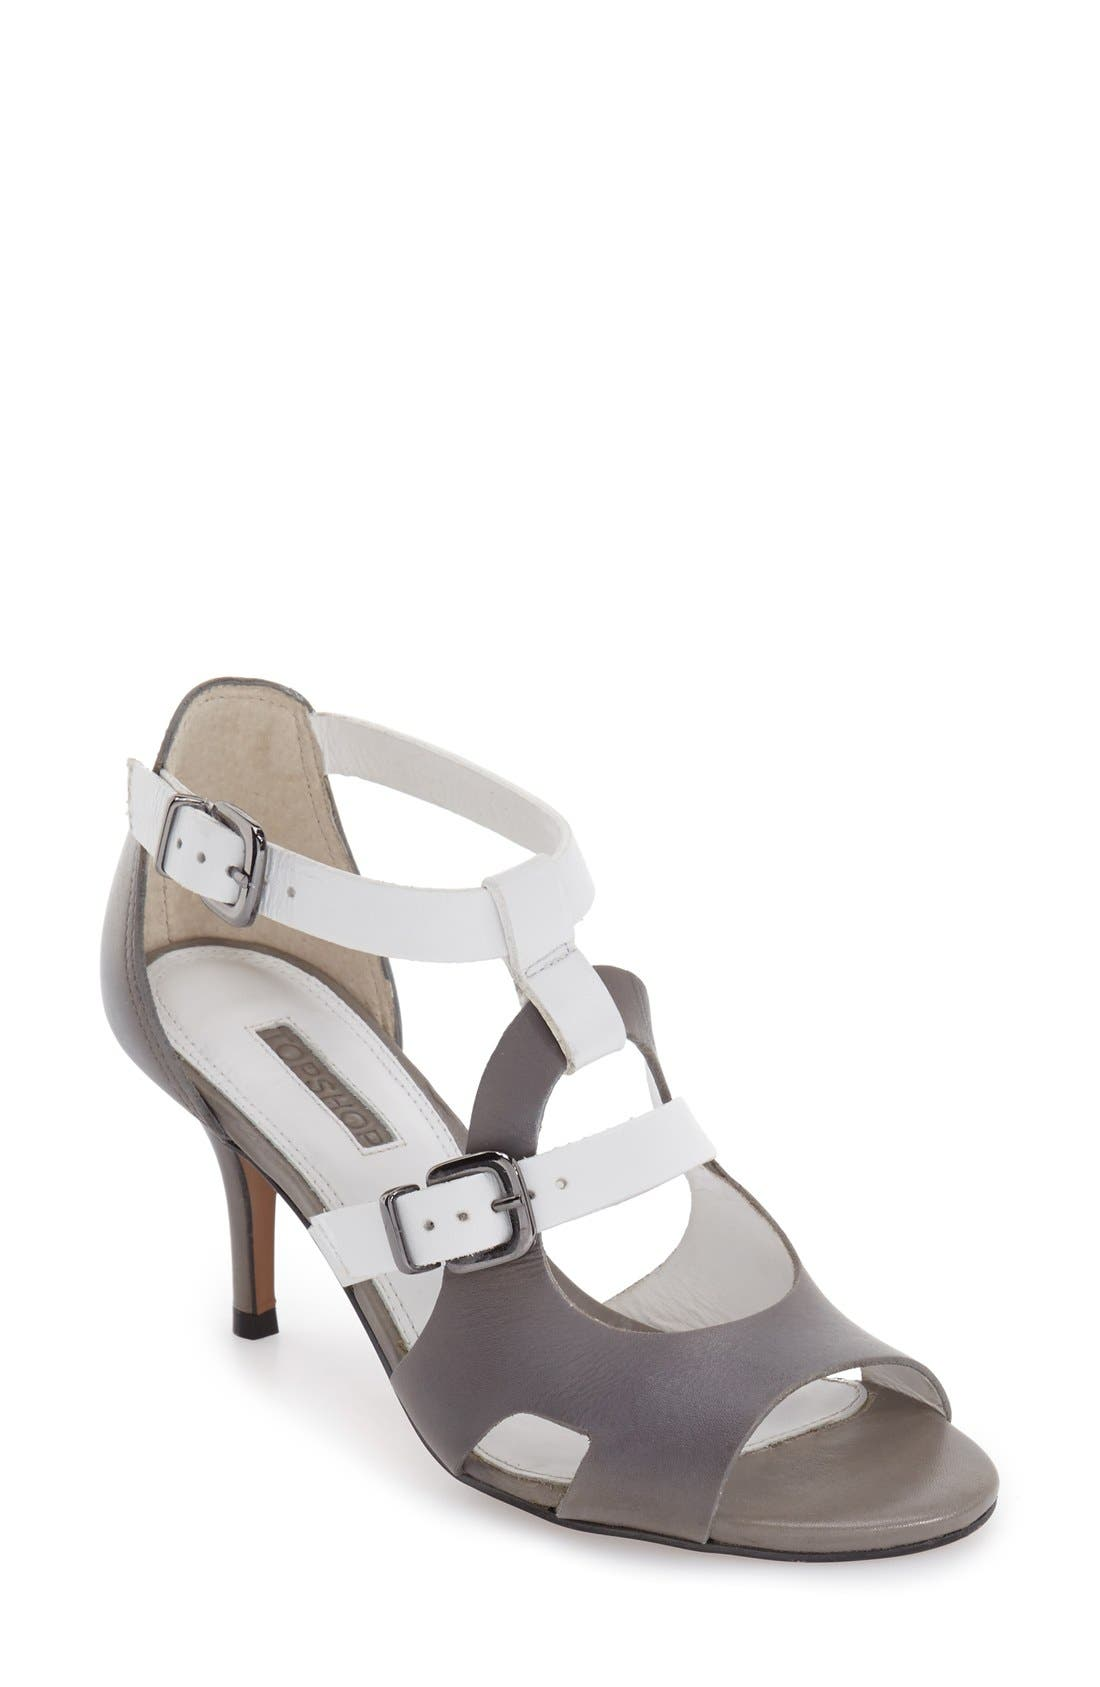 Main Image - Topshop 'Needle' Cutout Buckle Sandal (Women)